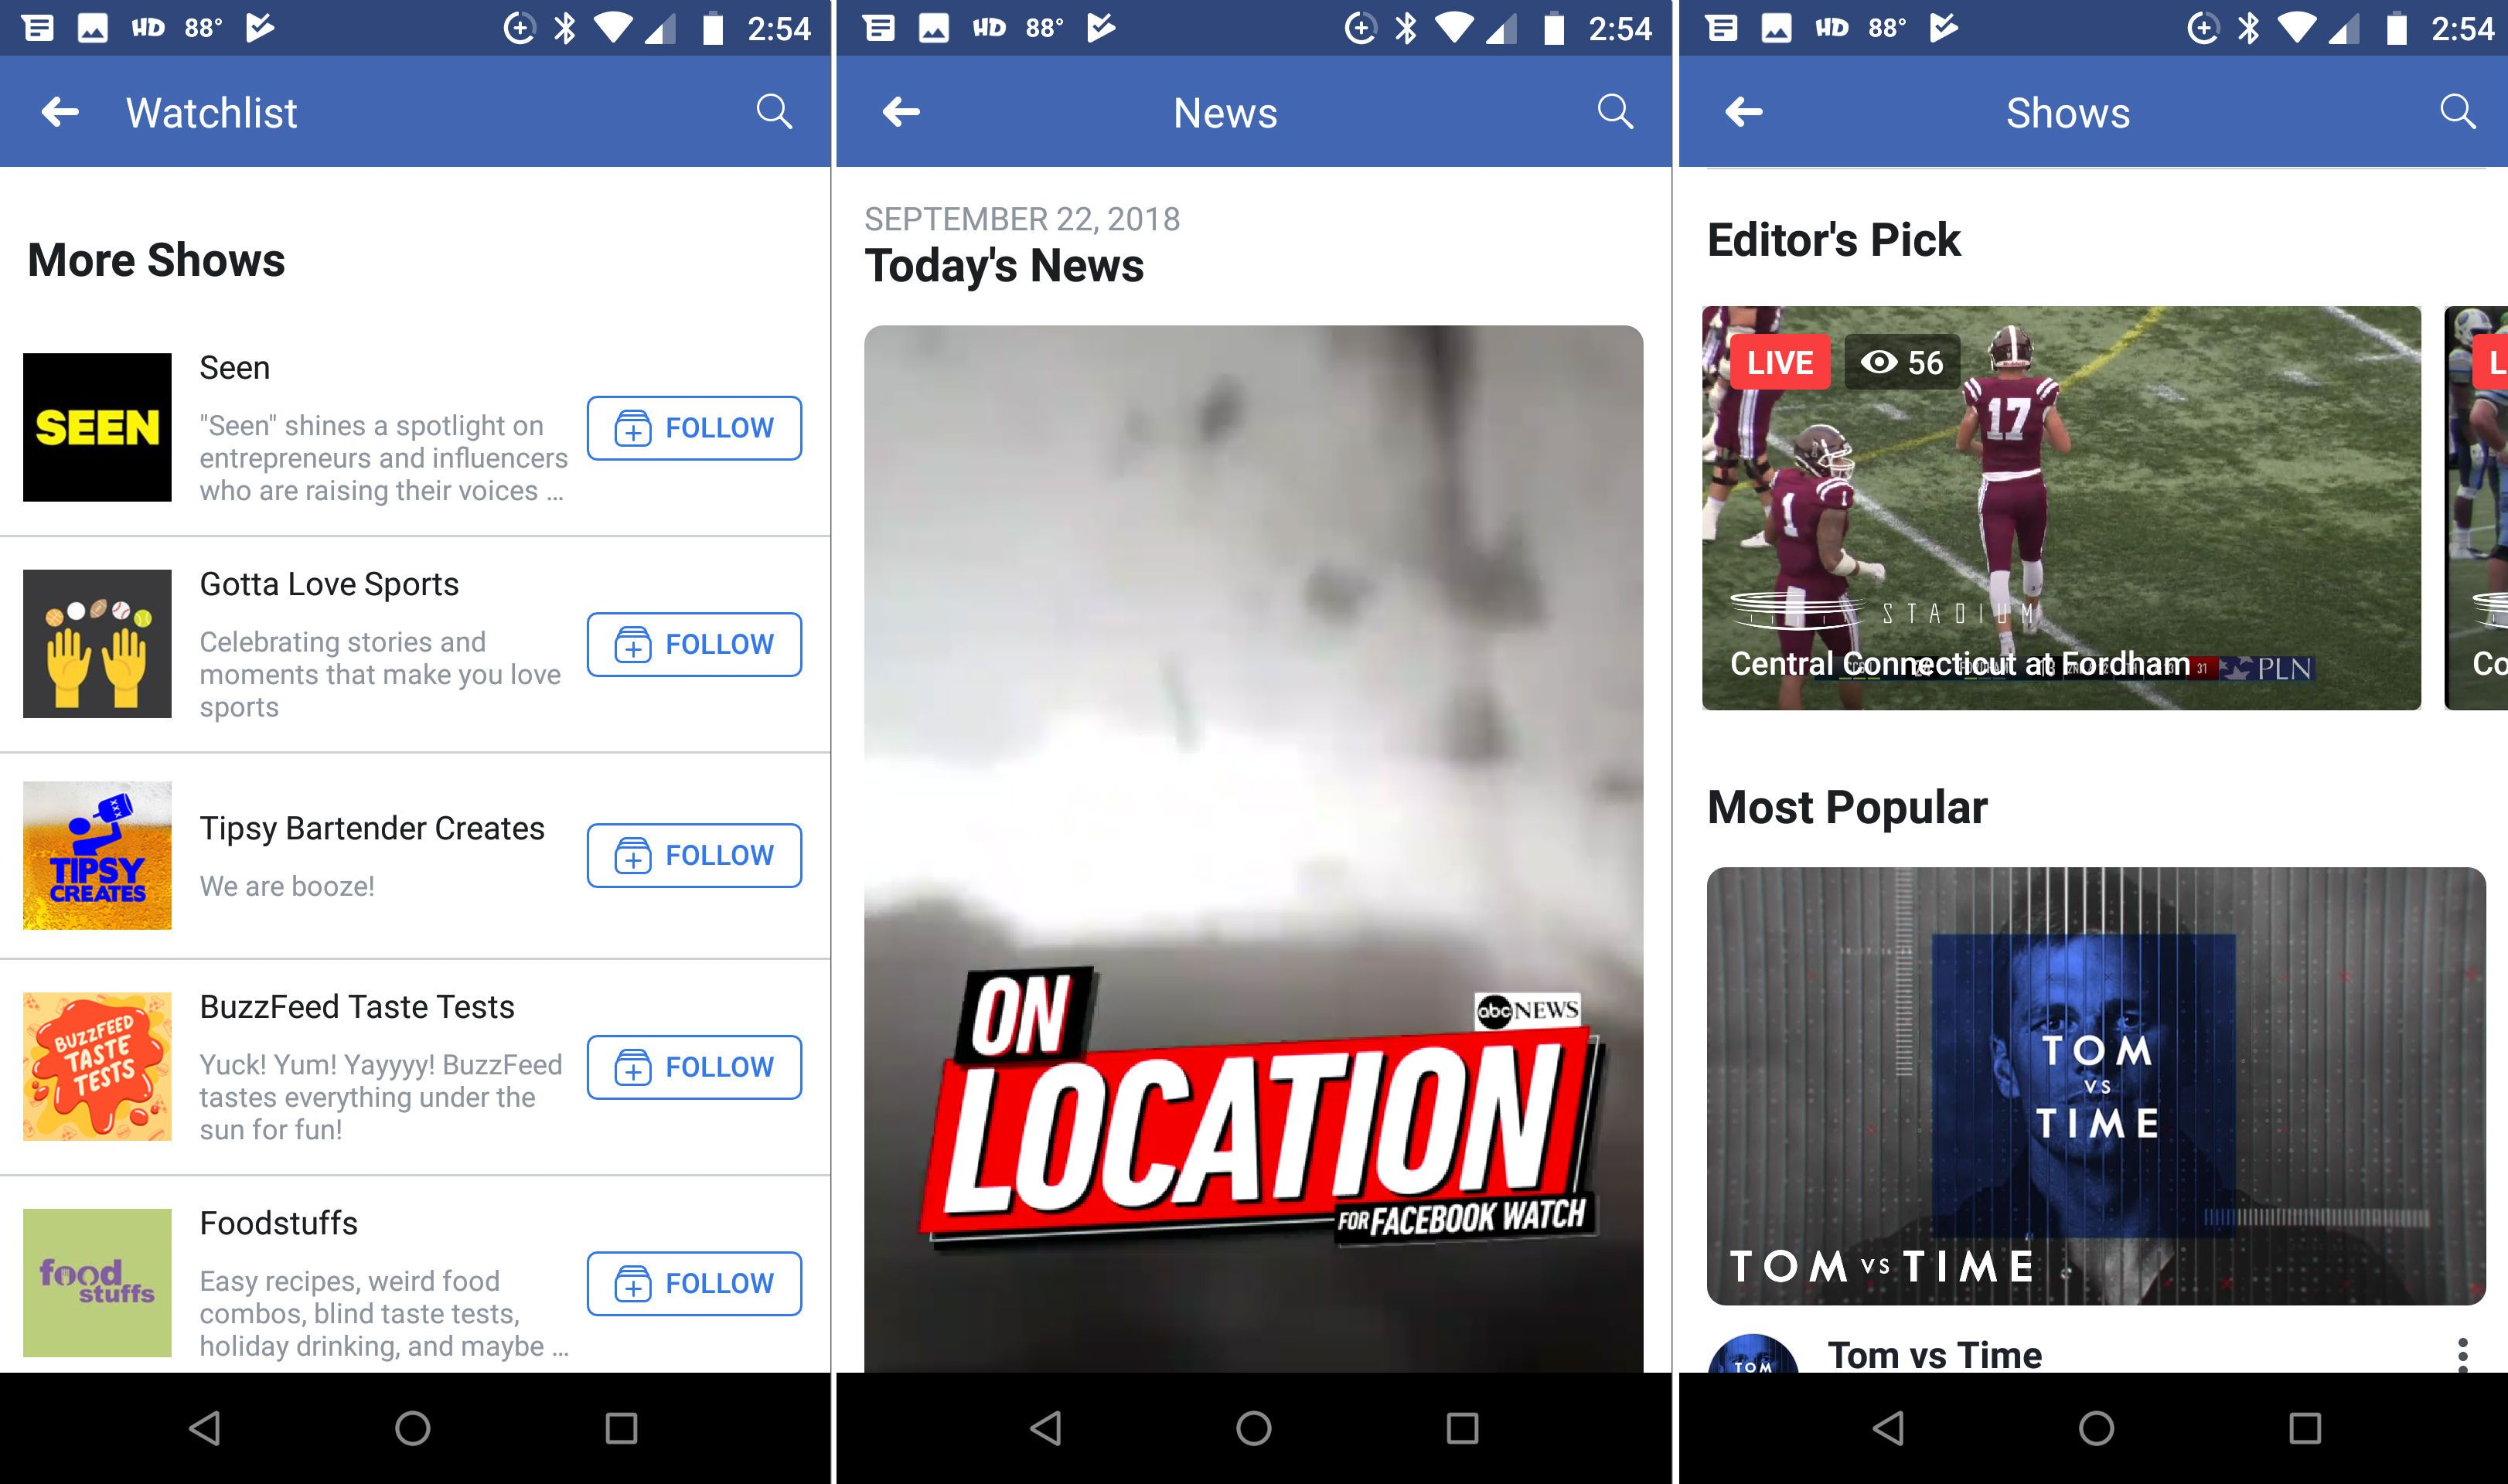 Facebook Watch: What It Is and How To Use It